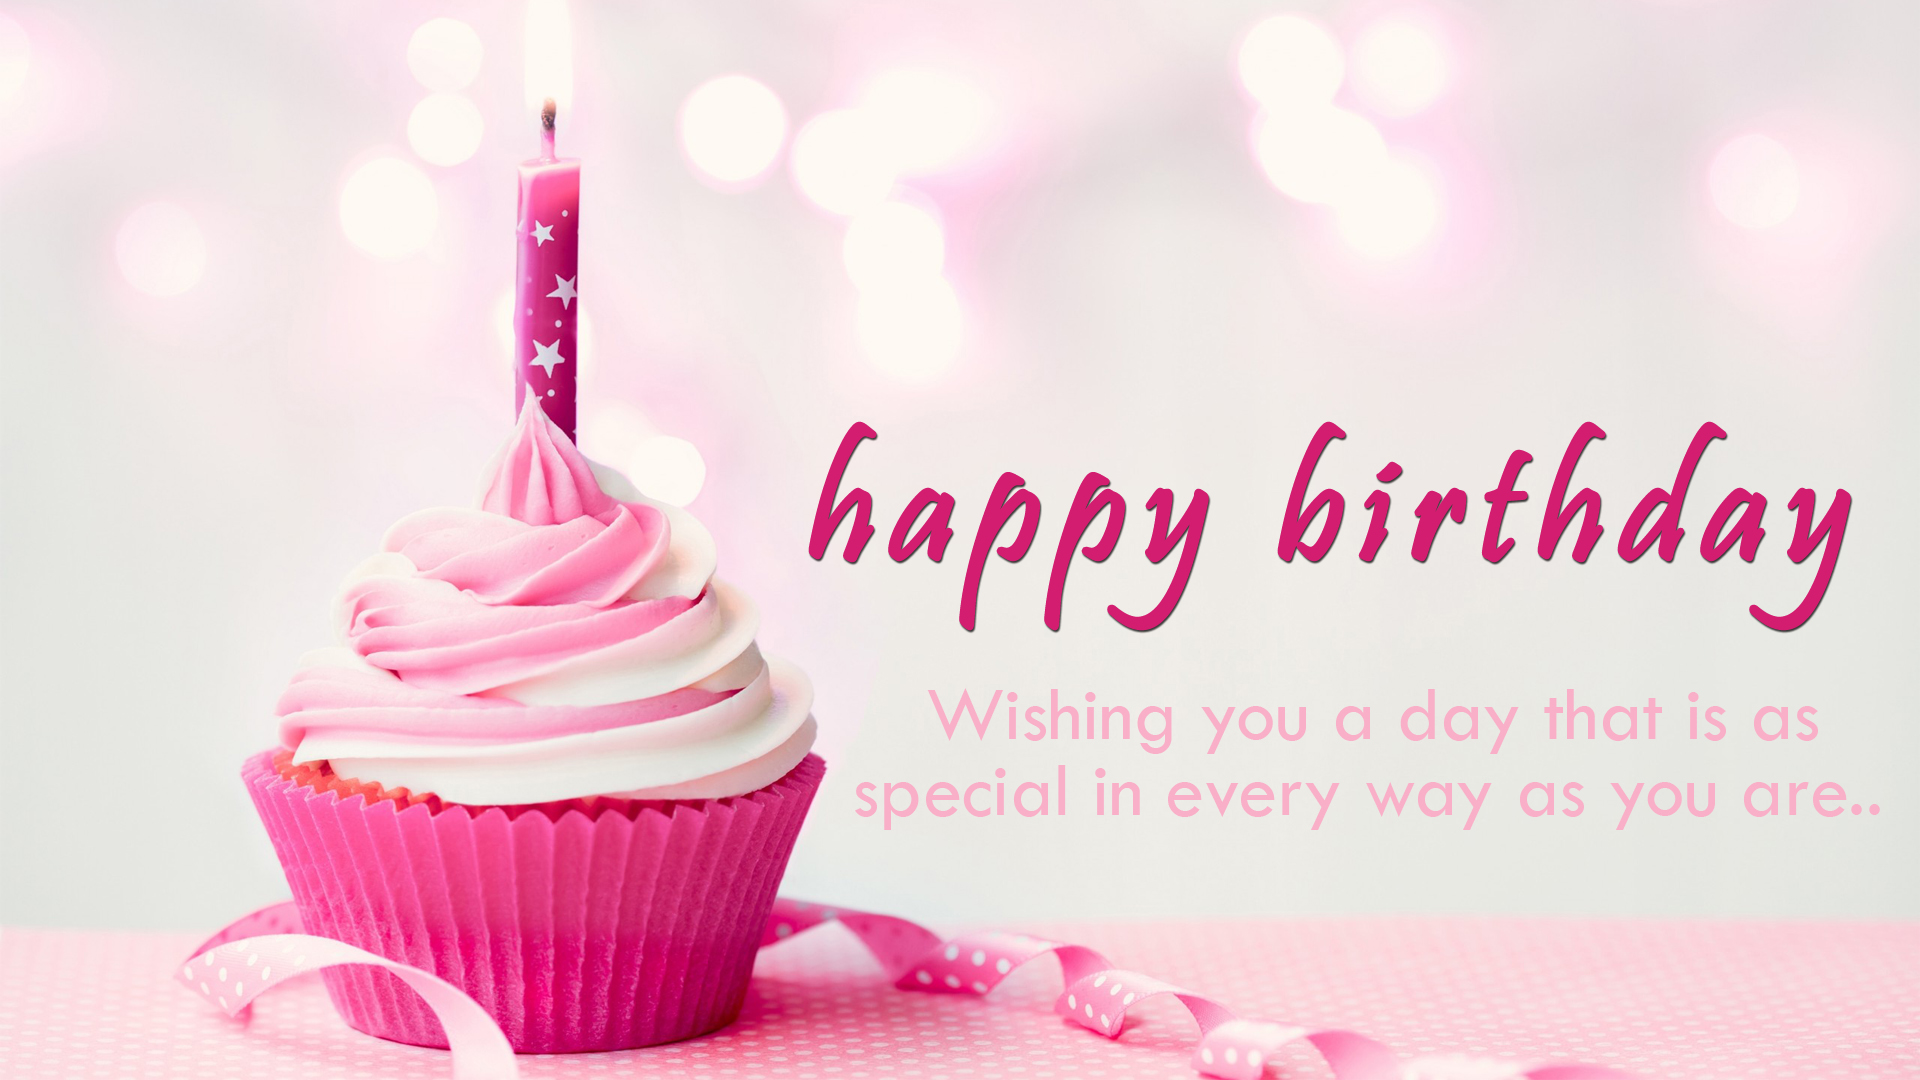 happy birthday wishes hd ; Happy_Birthday_Wishes_Greeting_HD_Wallpapers_Background